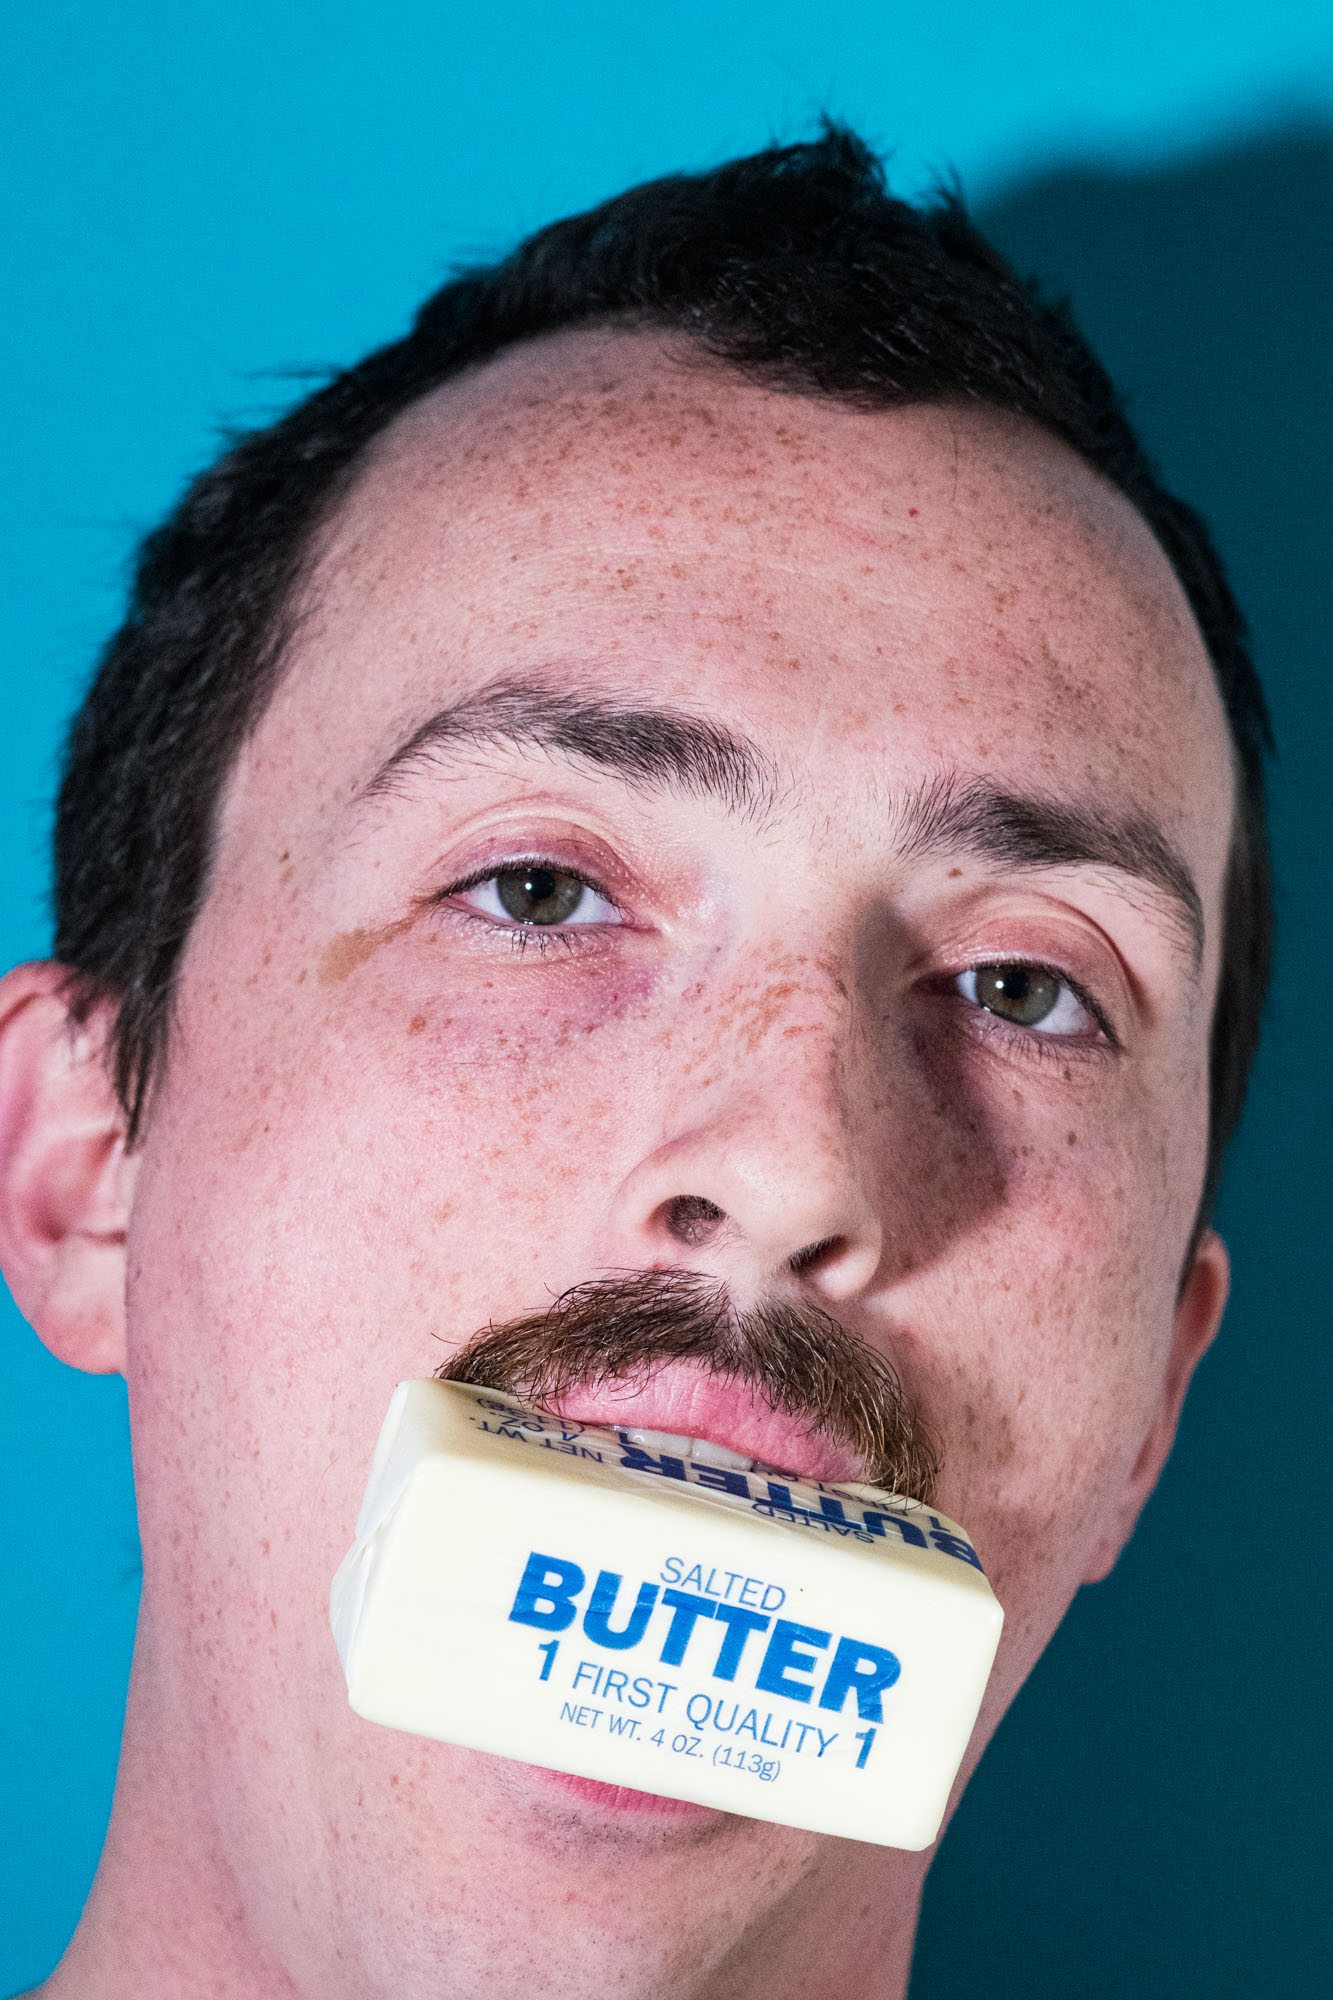 man eats butter